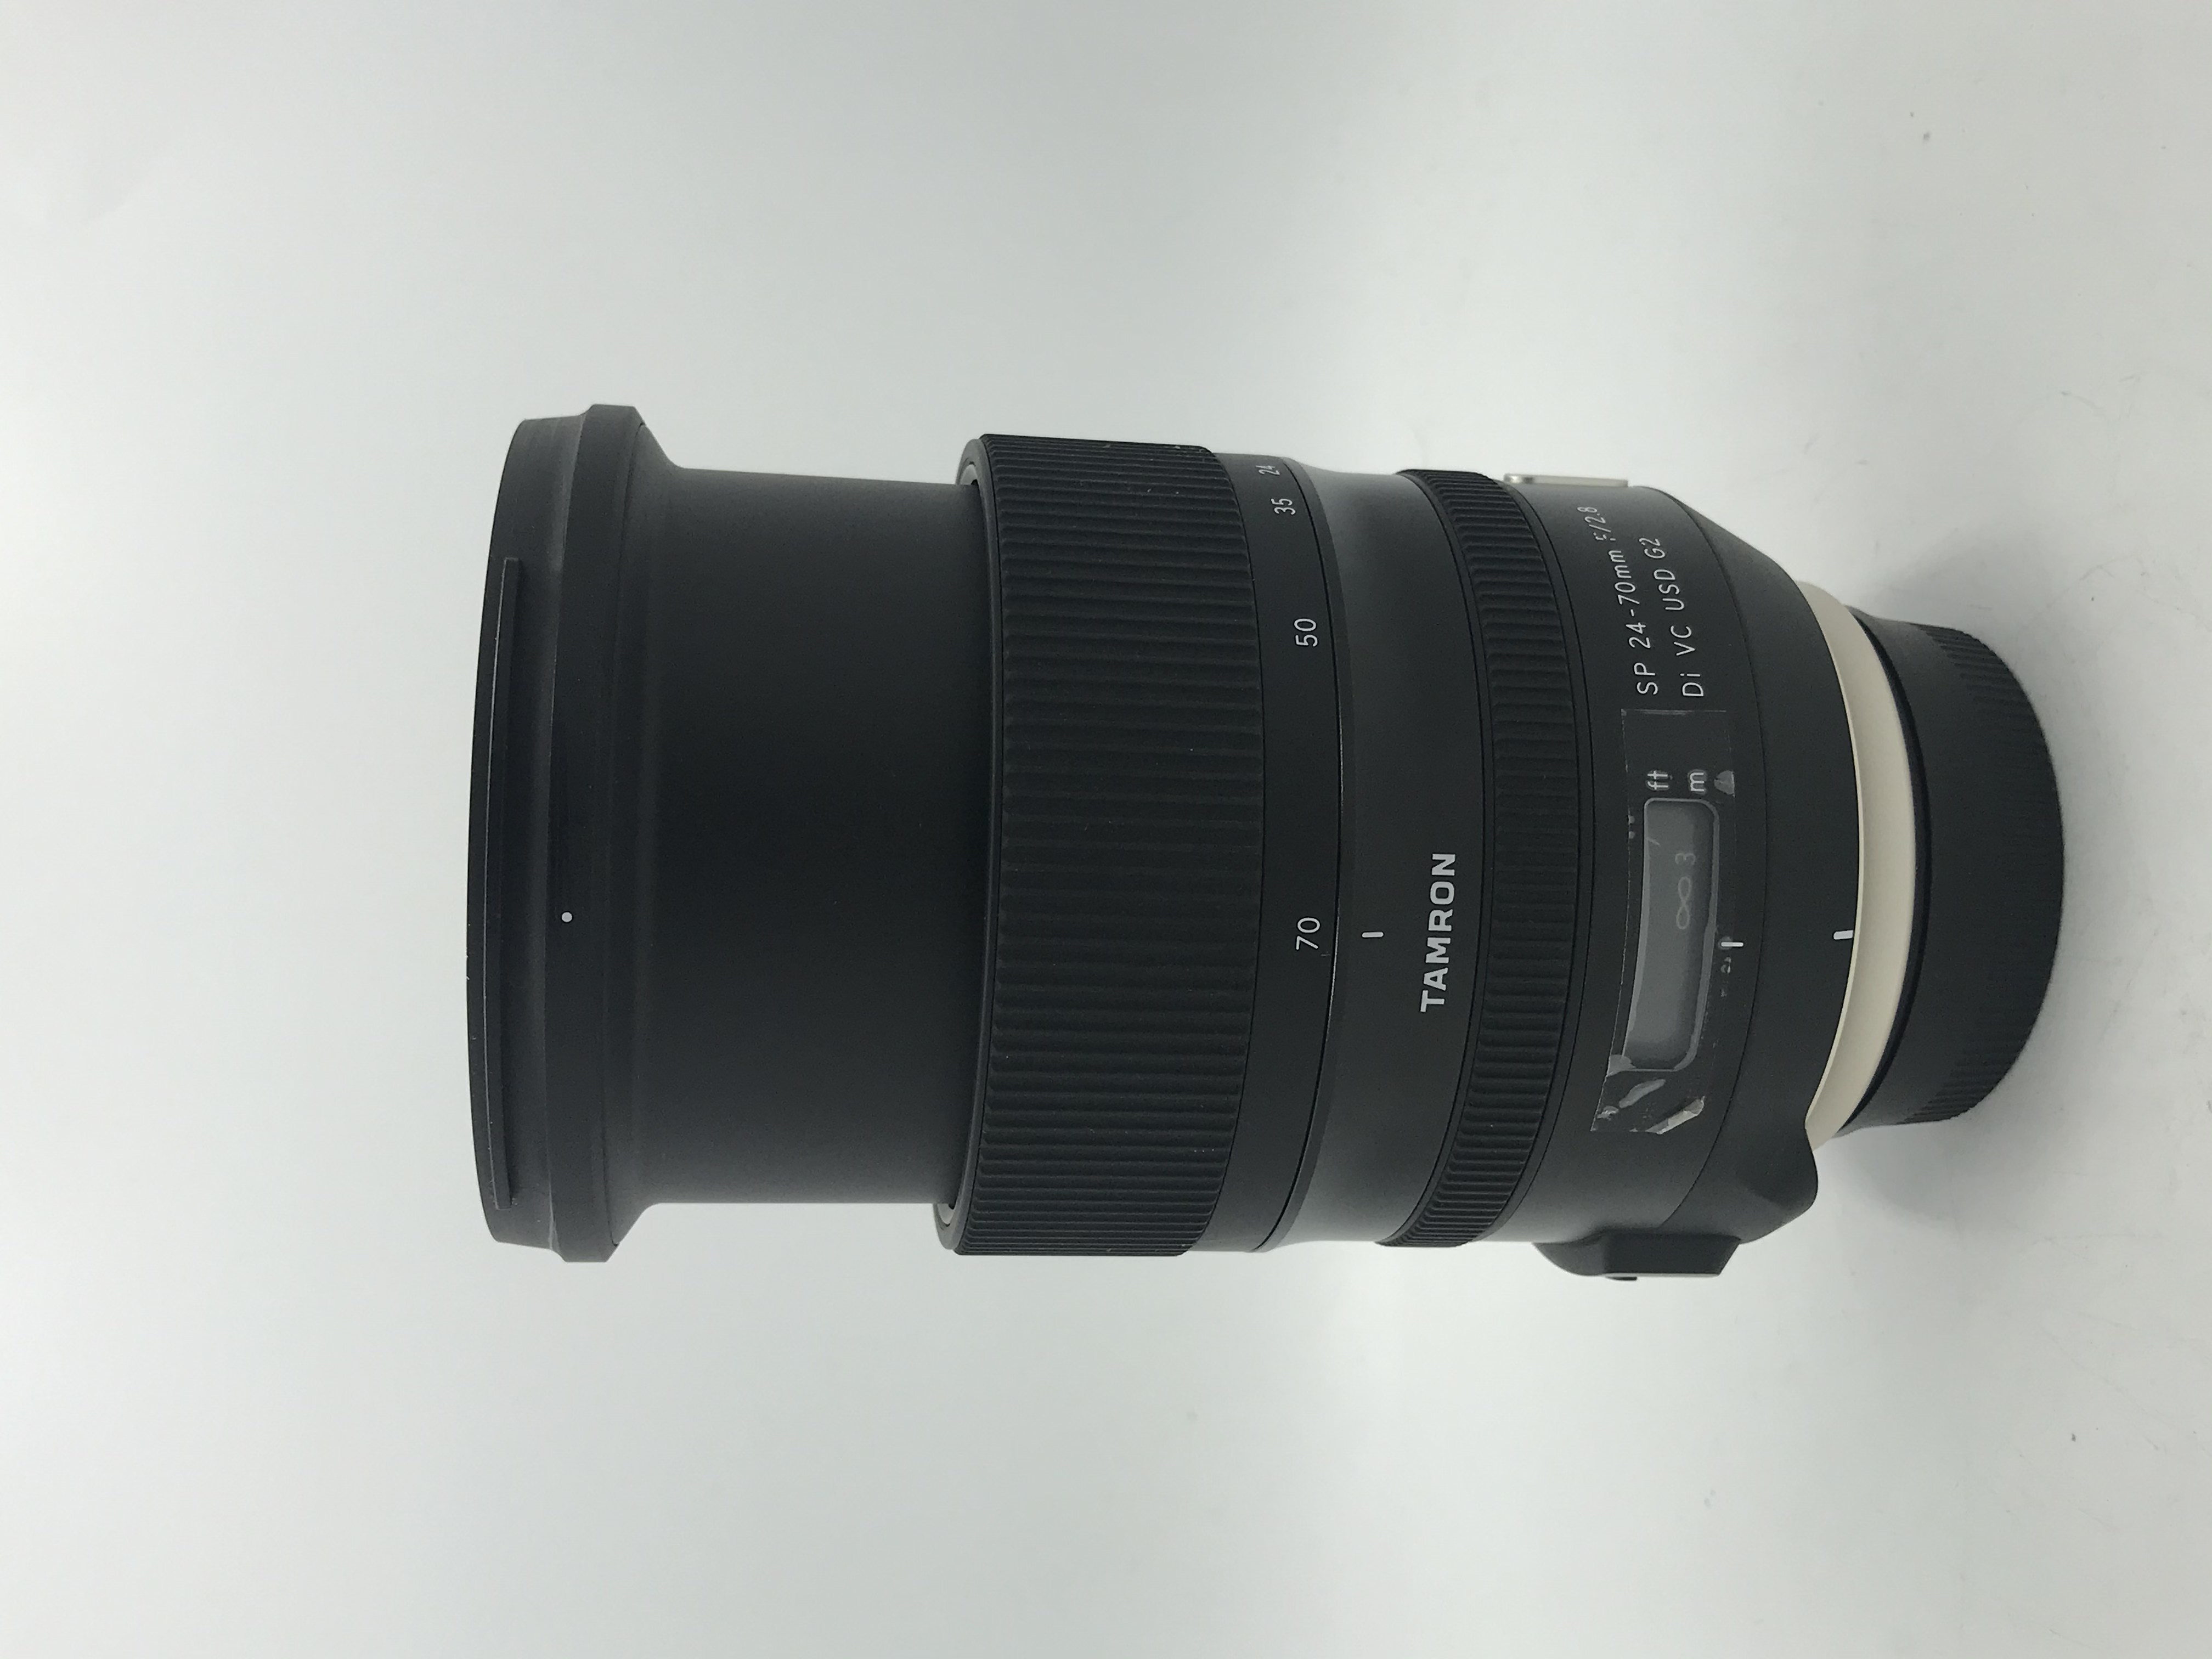 Used Tamron SP 24-70mm F2.8 Di VC USD G2 Lens for Nikon